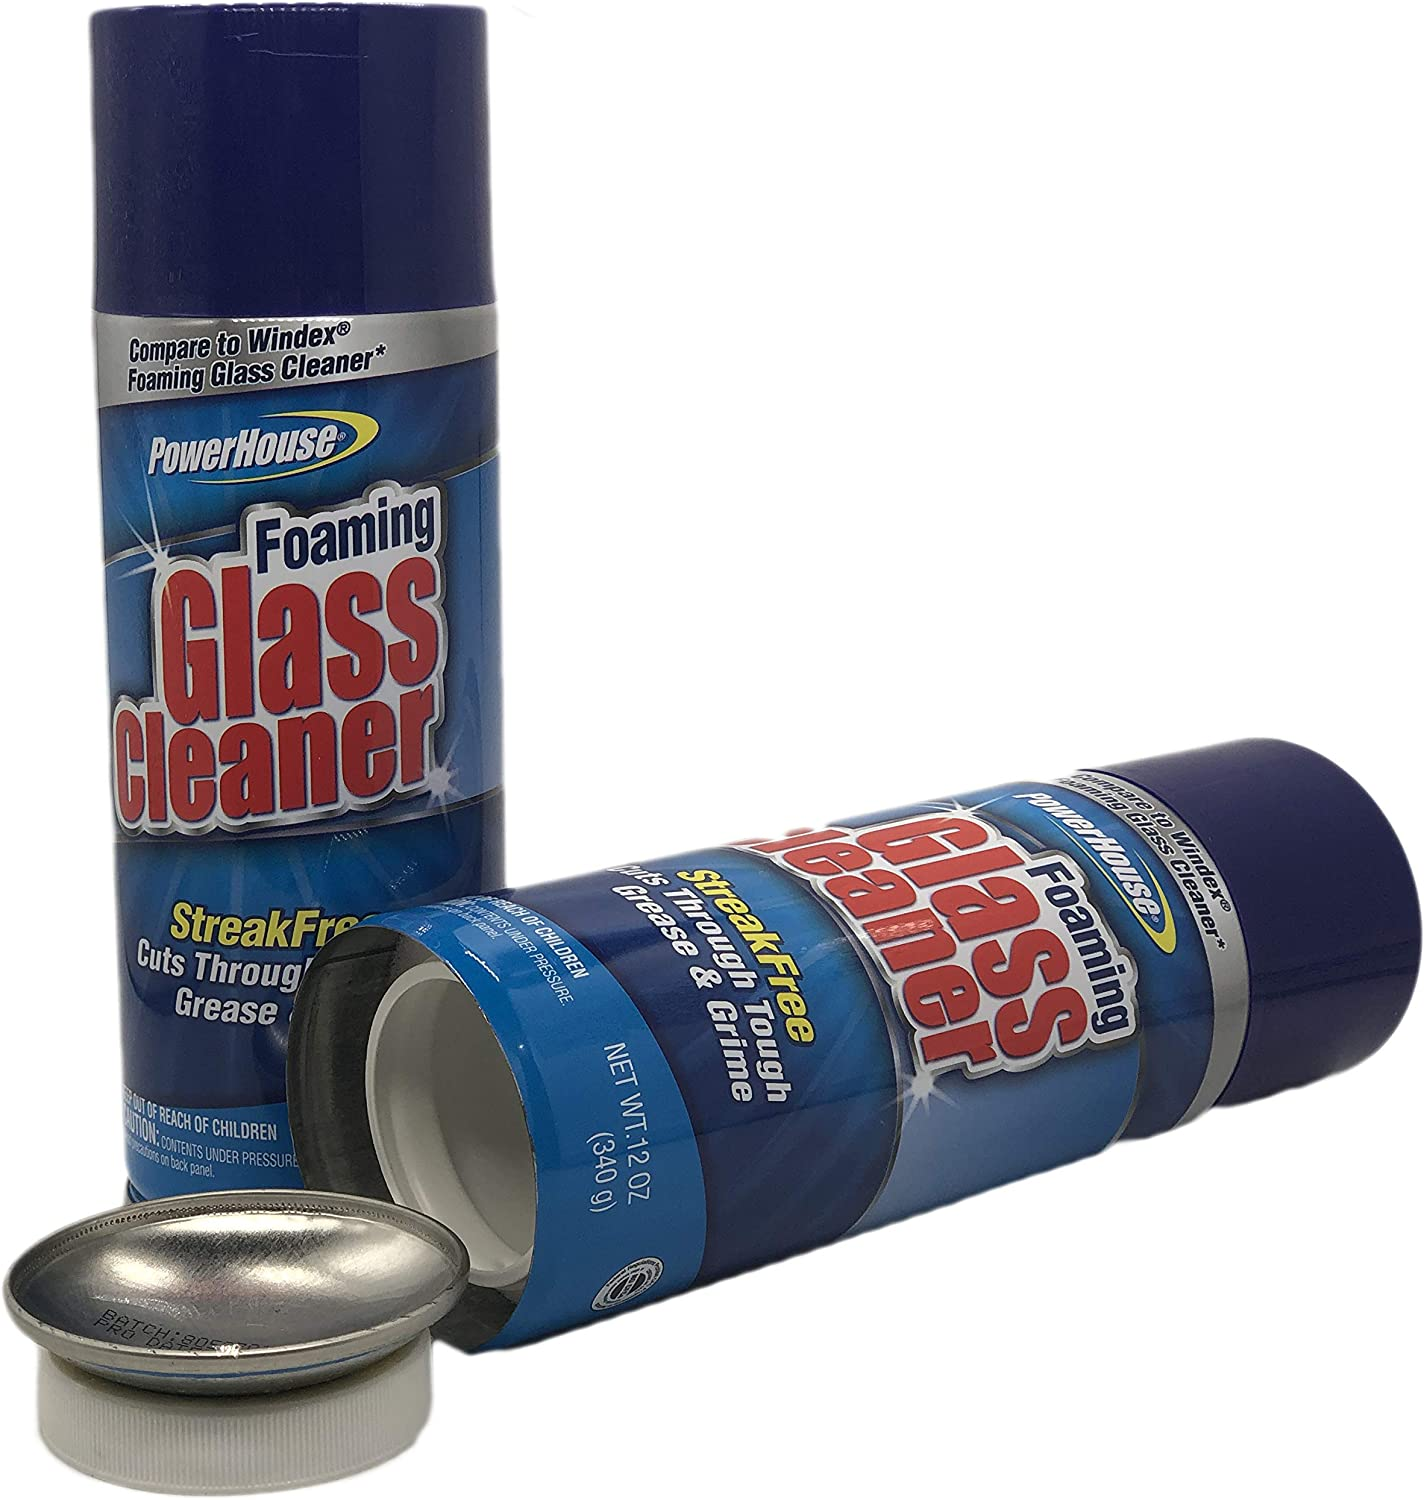 Powerhouse Foaming Glass Cleaner Diversion Stash Safe